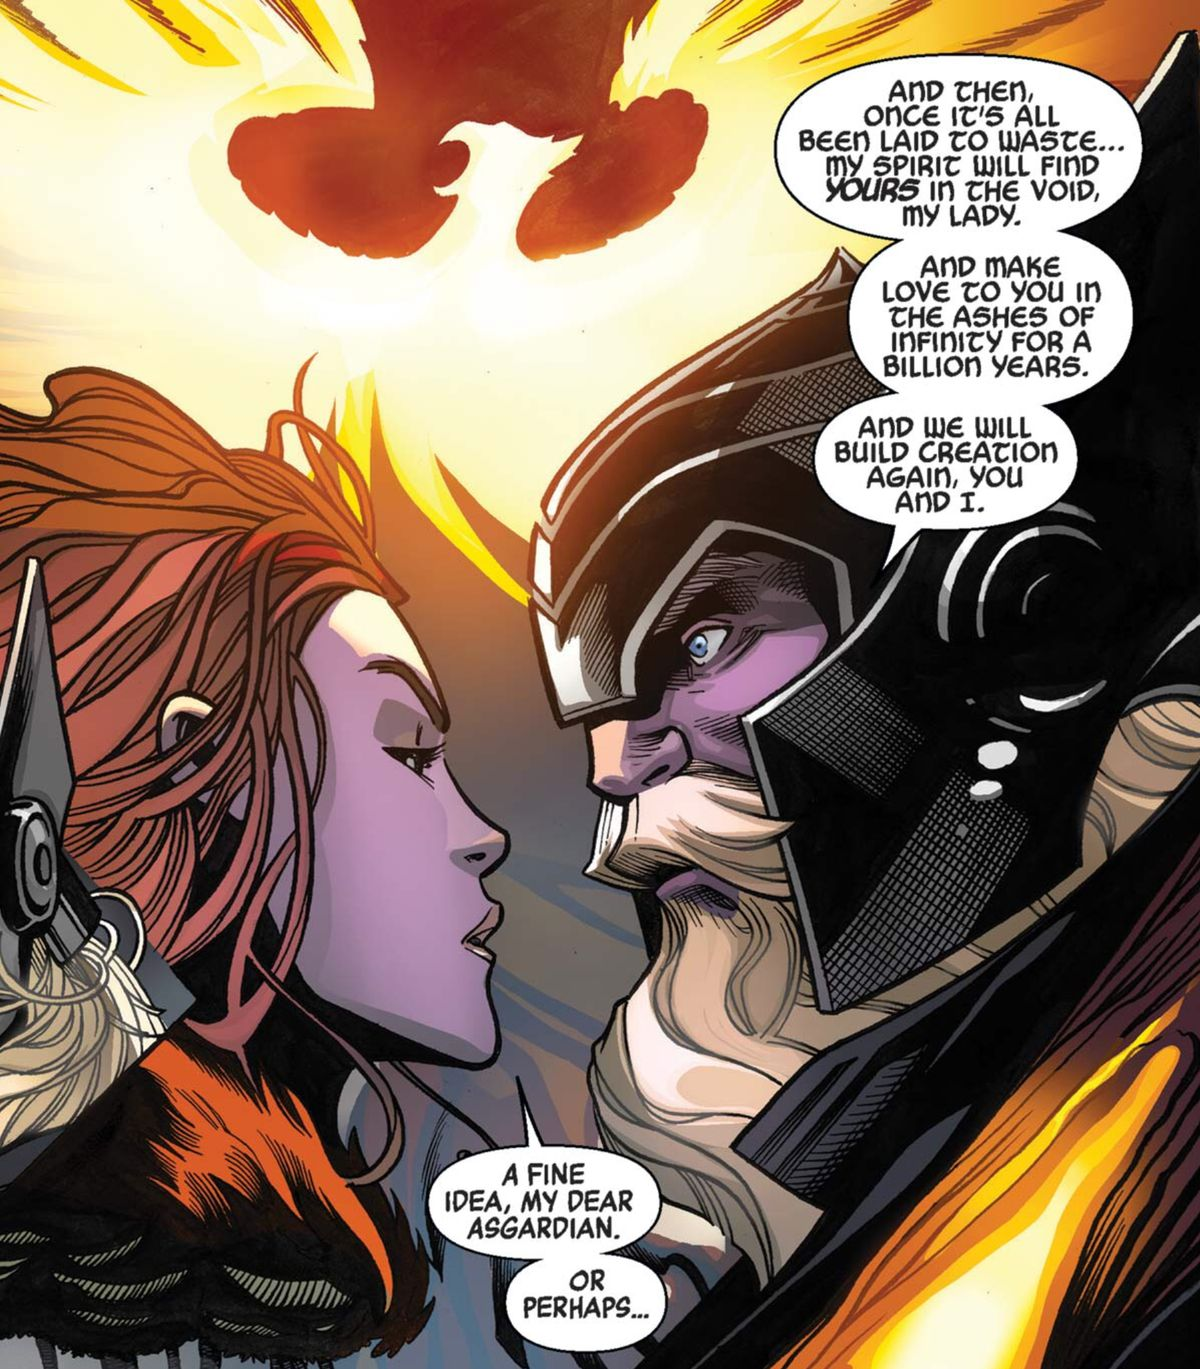 The Phoenix and Odin in Avengers #1, Marvel Comics (2018).